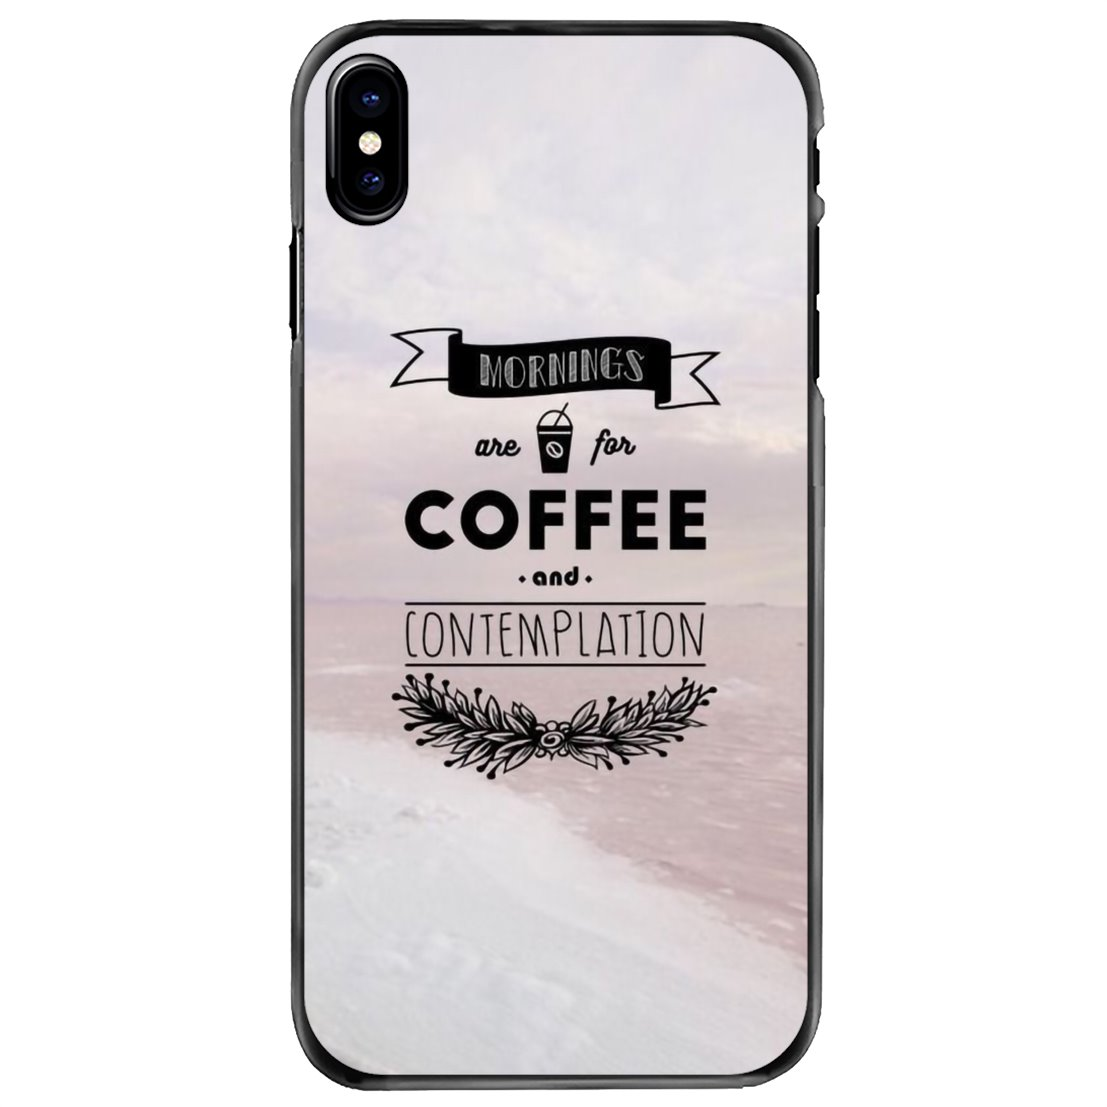 Steve Will Do It Logo For Samsung Galaxy Note 2 3 4 5 S2 S3 S4 S5 Mini S6 S7 Edge S8 S9 Plus Accessories Hard Phone Case Phone Case Covers Aliexpress Check out our steve will do it selection for the very best in unique or custom, handmade pieces from our shops. aliexpress